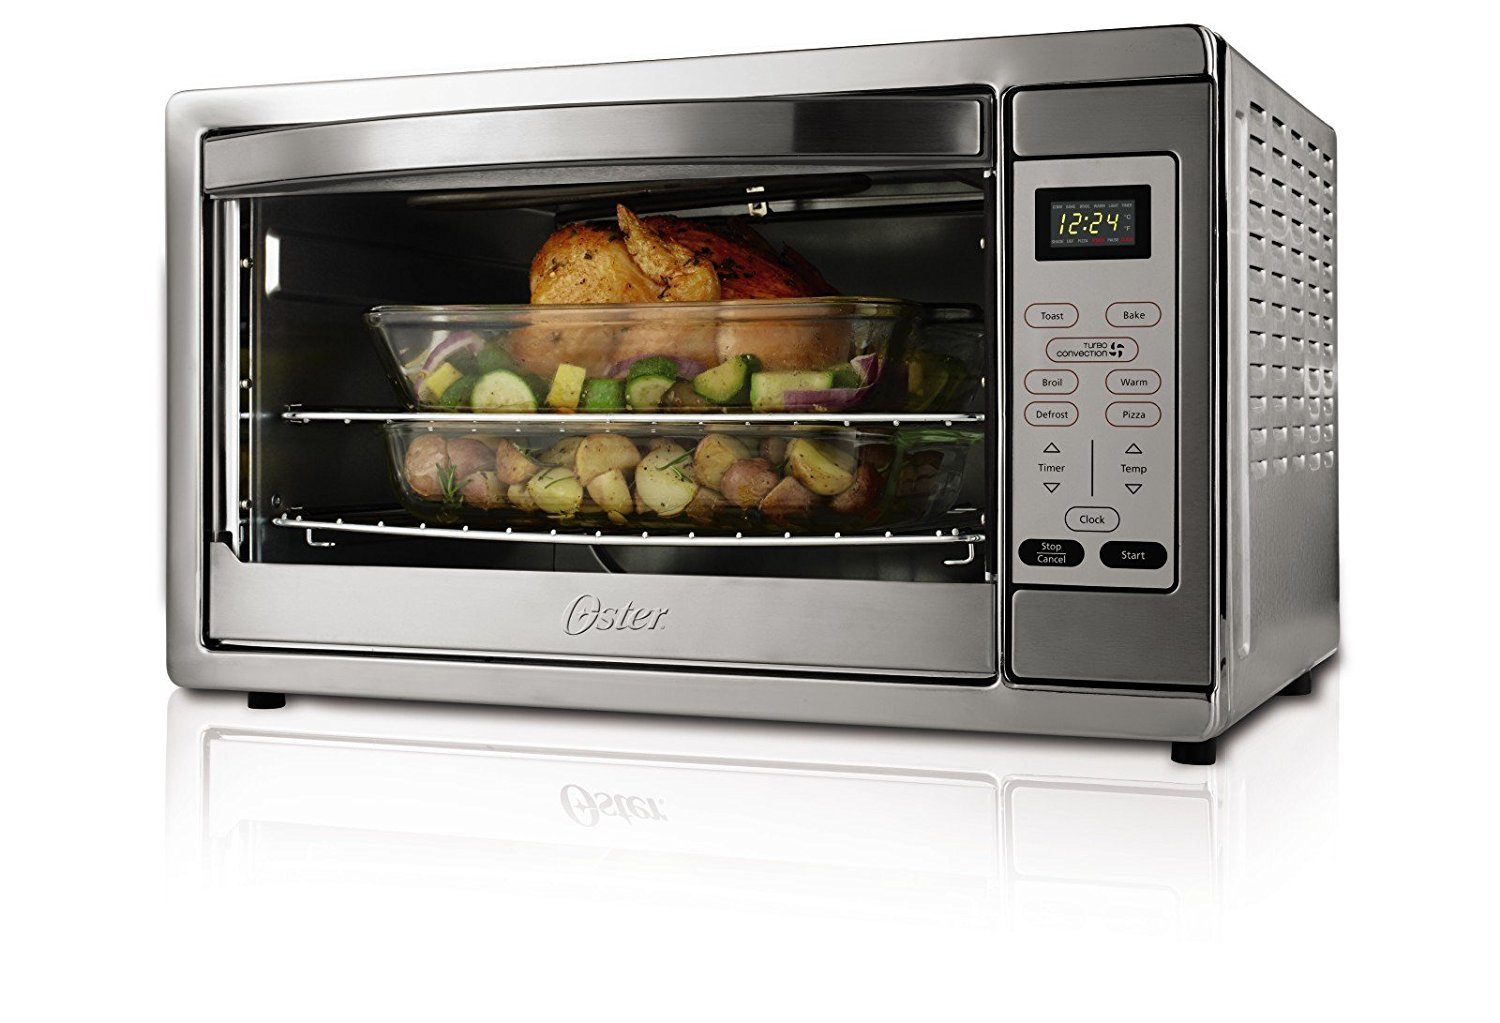 Oster Extra Large Digital Countertop Oven